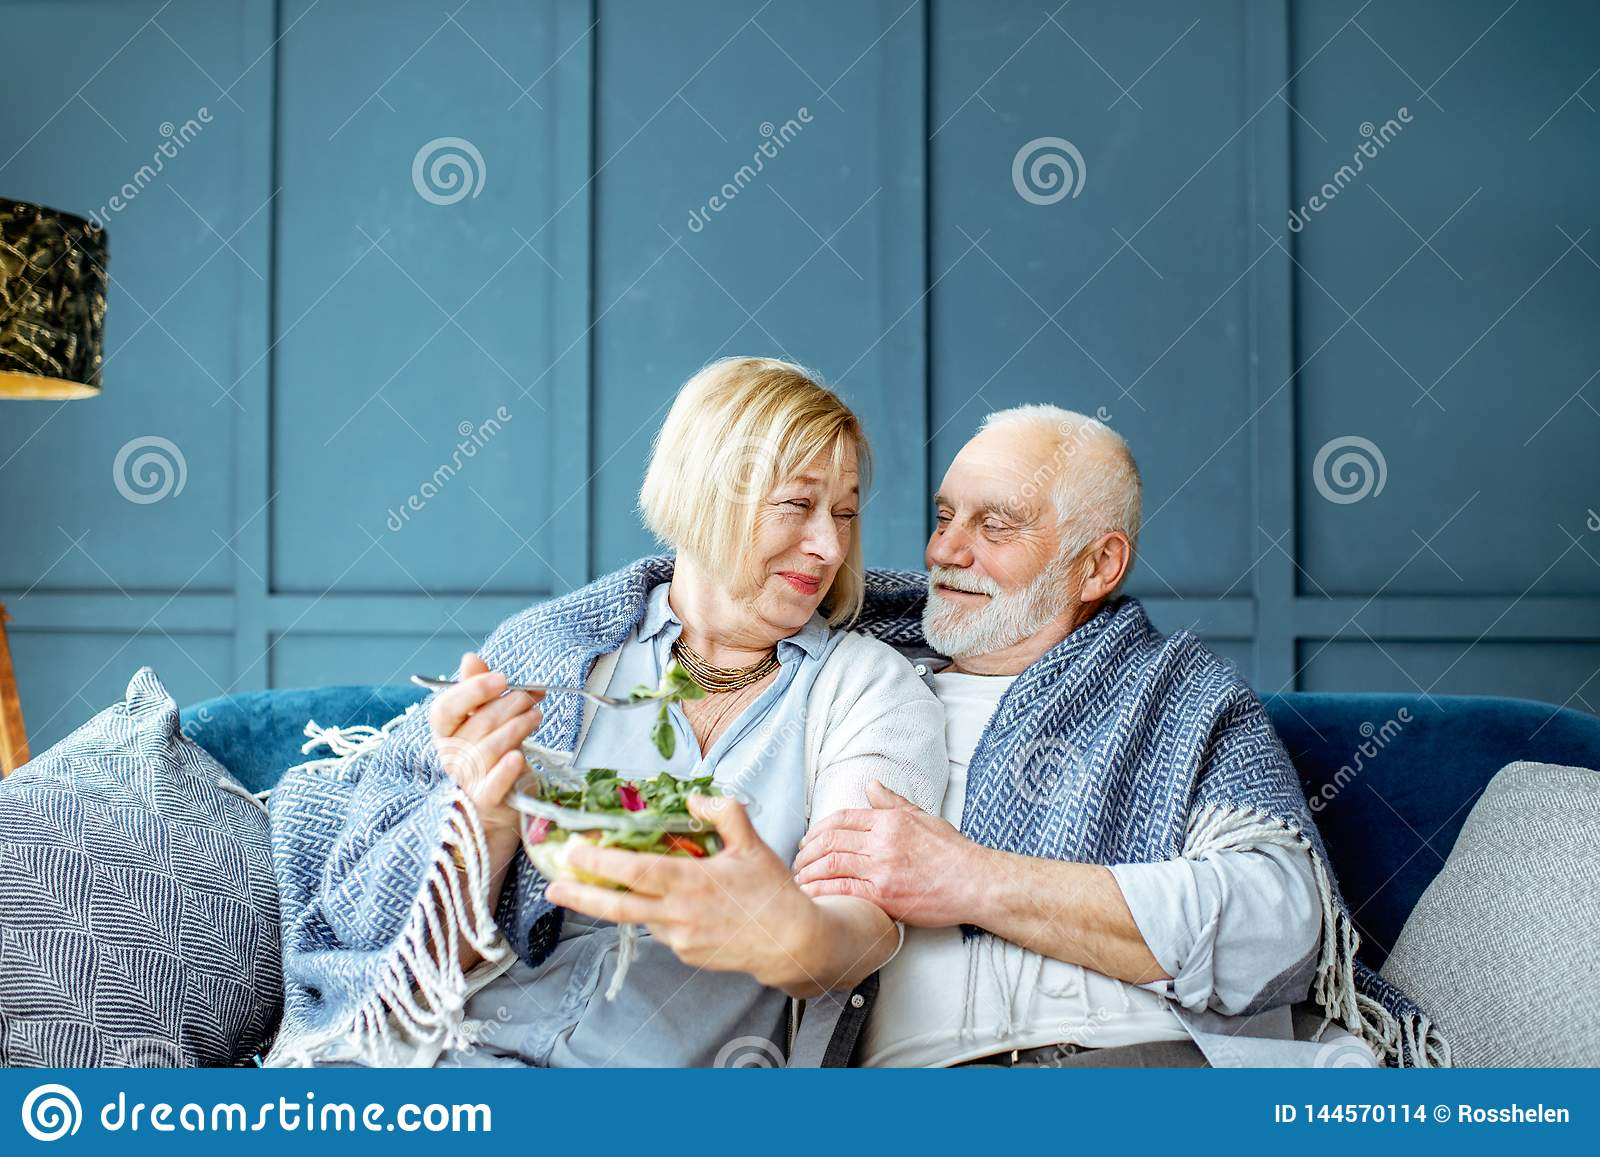 Senior couple eating healthy salad on the couch at home